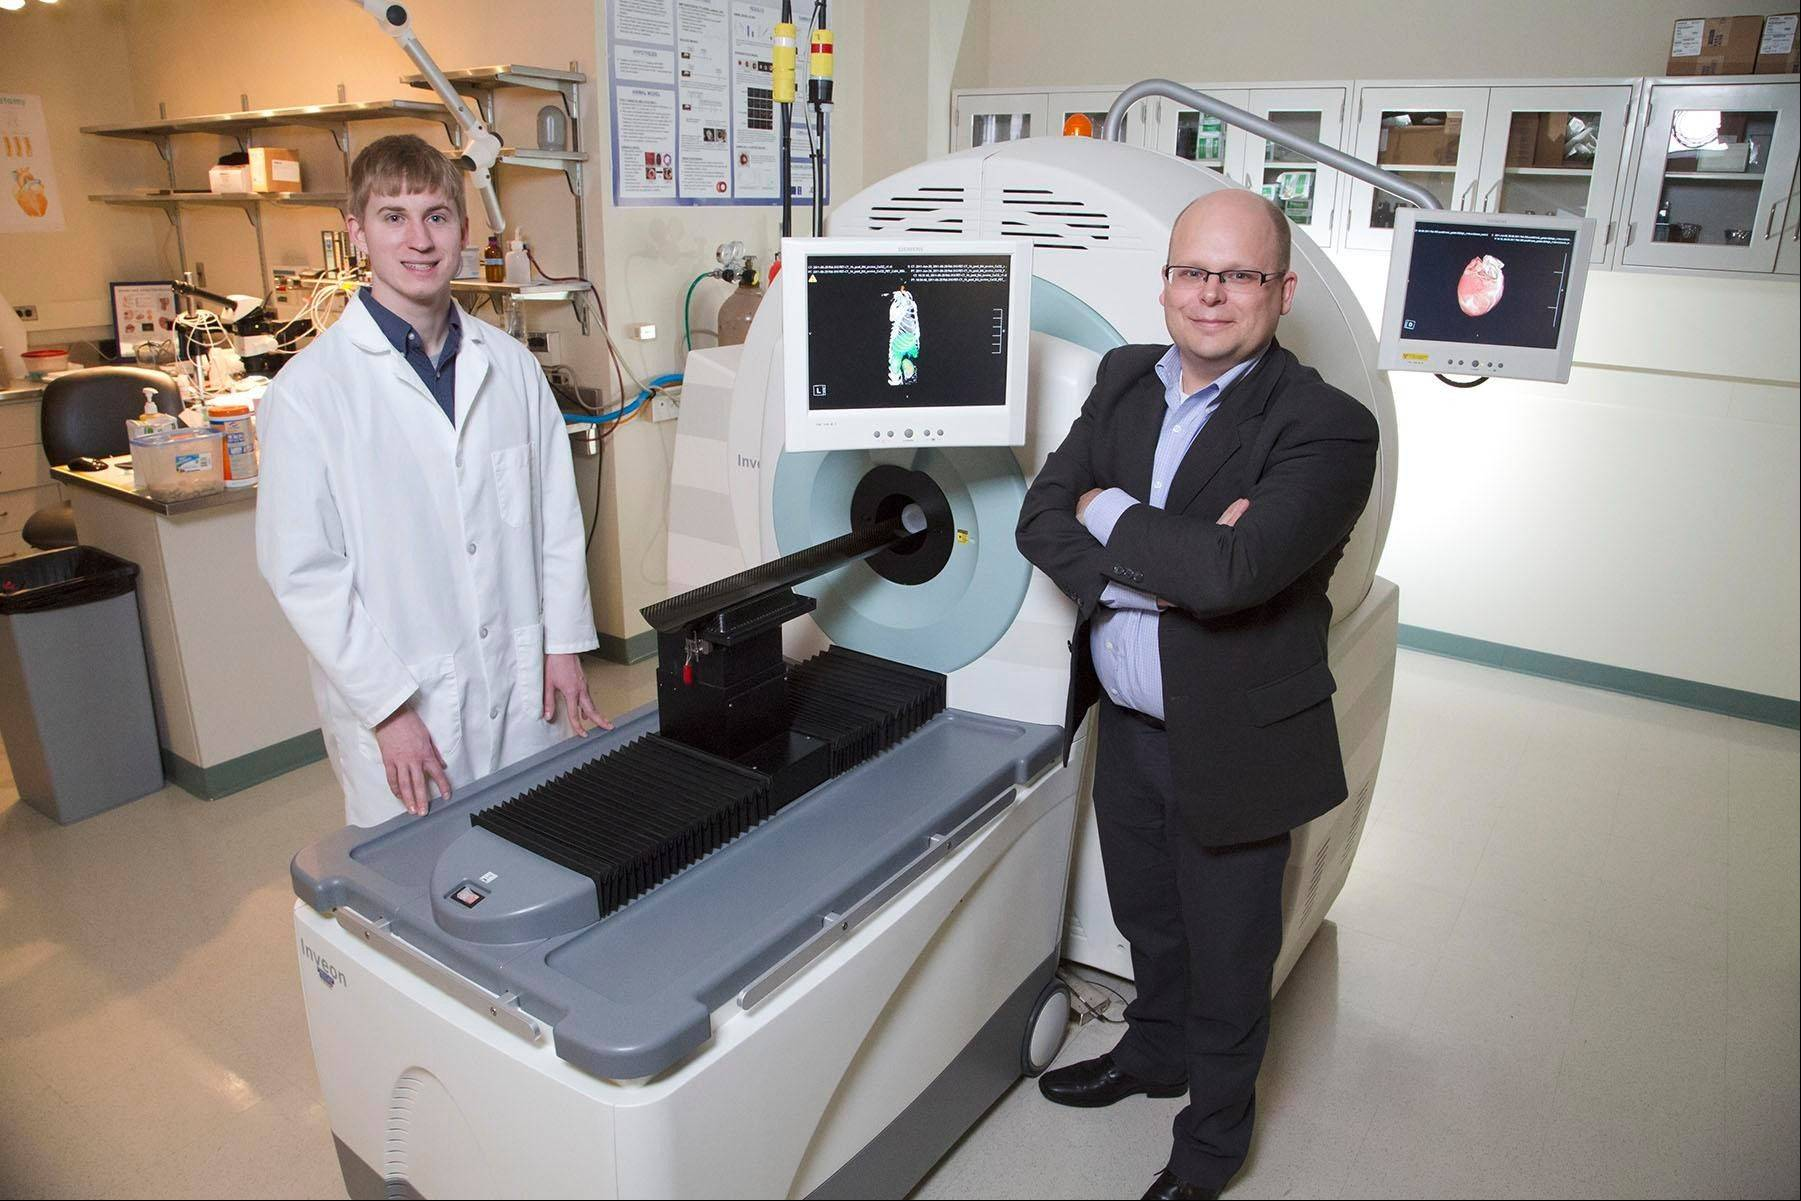 University of Illinois senior Matt Schuelke assists senior research scientist Wawrzyniec Dobrucki with cutting-edge imaging research aimed at benefiting diabetic patients. The Hoffman Estates native, who five years ago suffered a serious brain injury while skiing, has been accepted into multiple MD/Ph.D. programs.